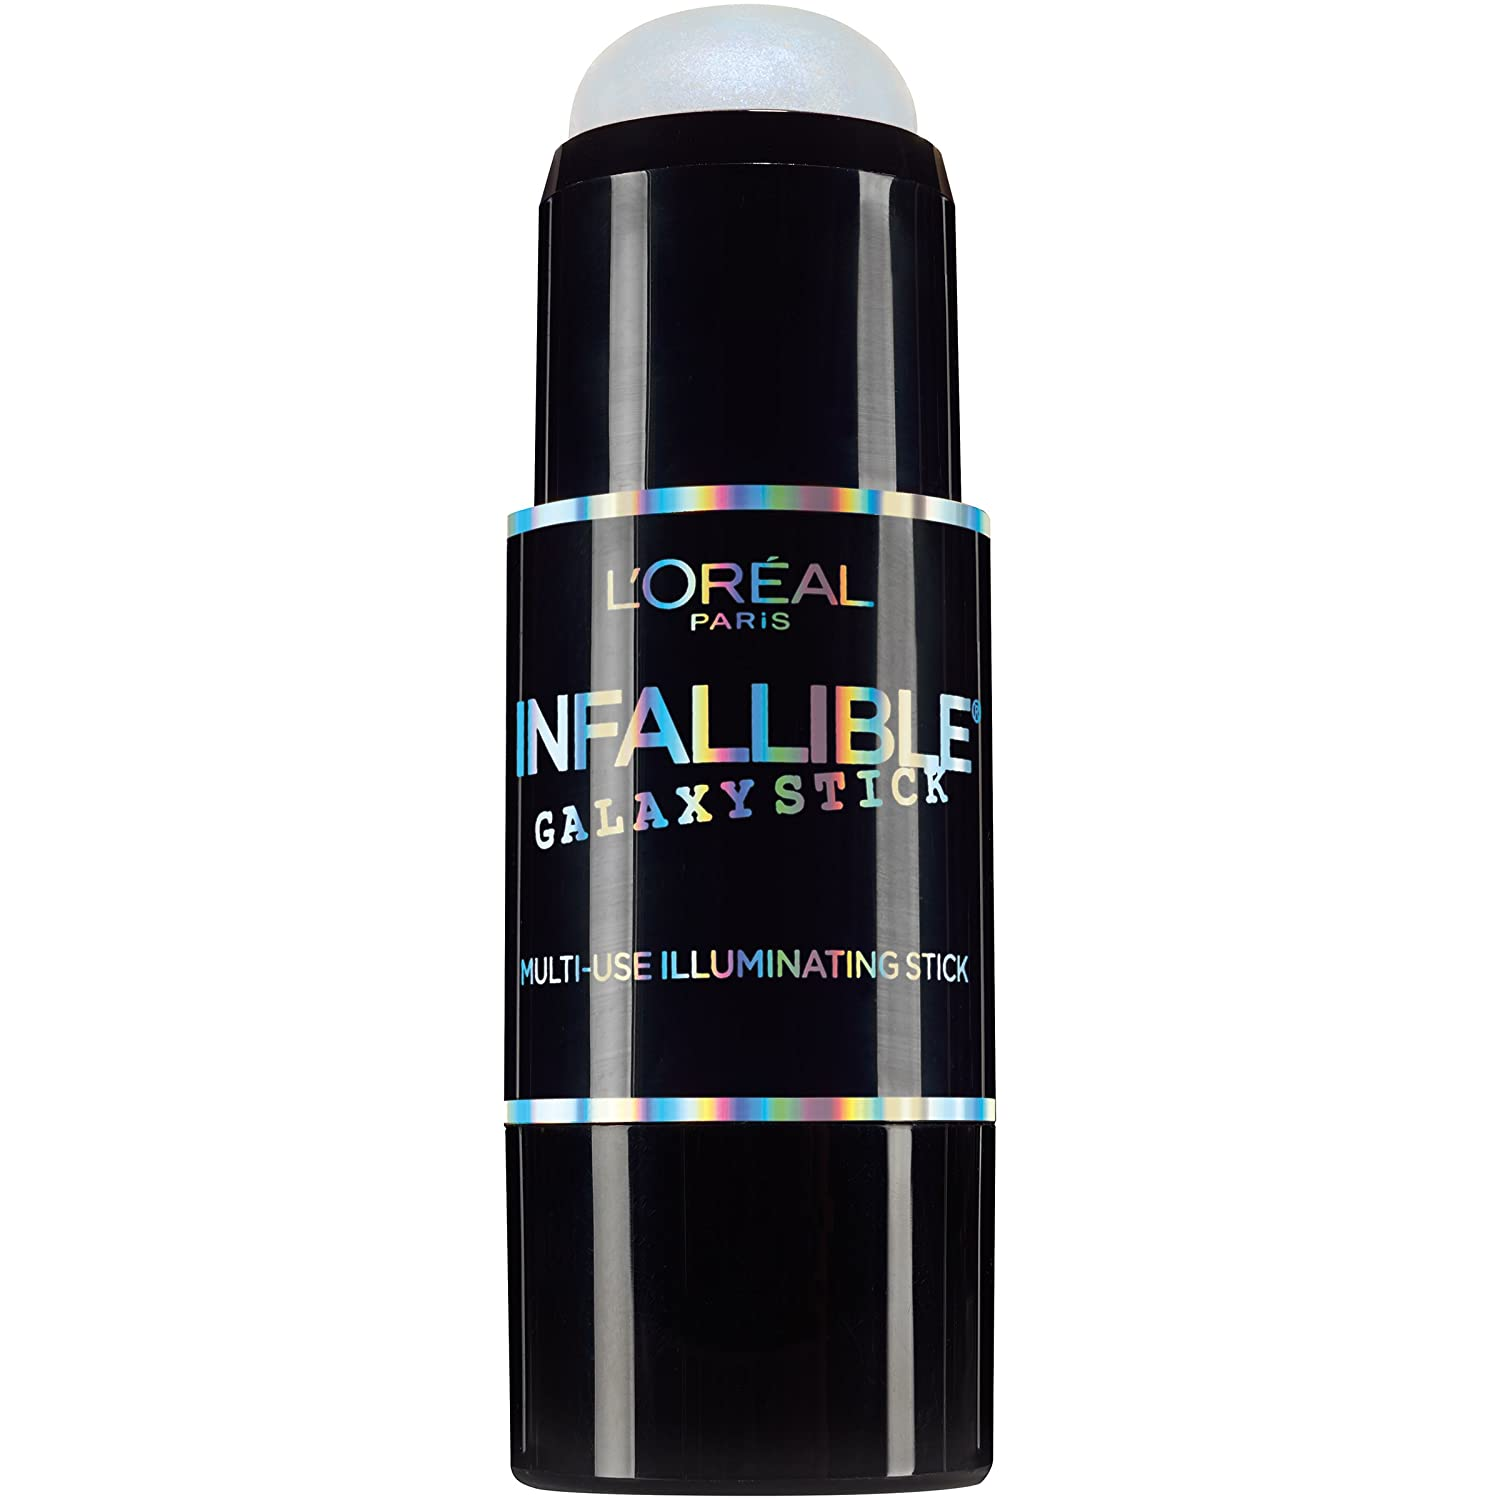 WHOLESALE LOREAL INFALLIBLE GALAXY STICK - ASTRO BLUE - 48 PIECE LOT